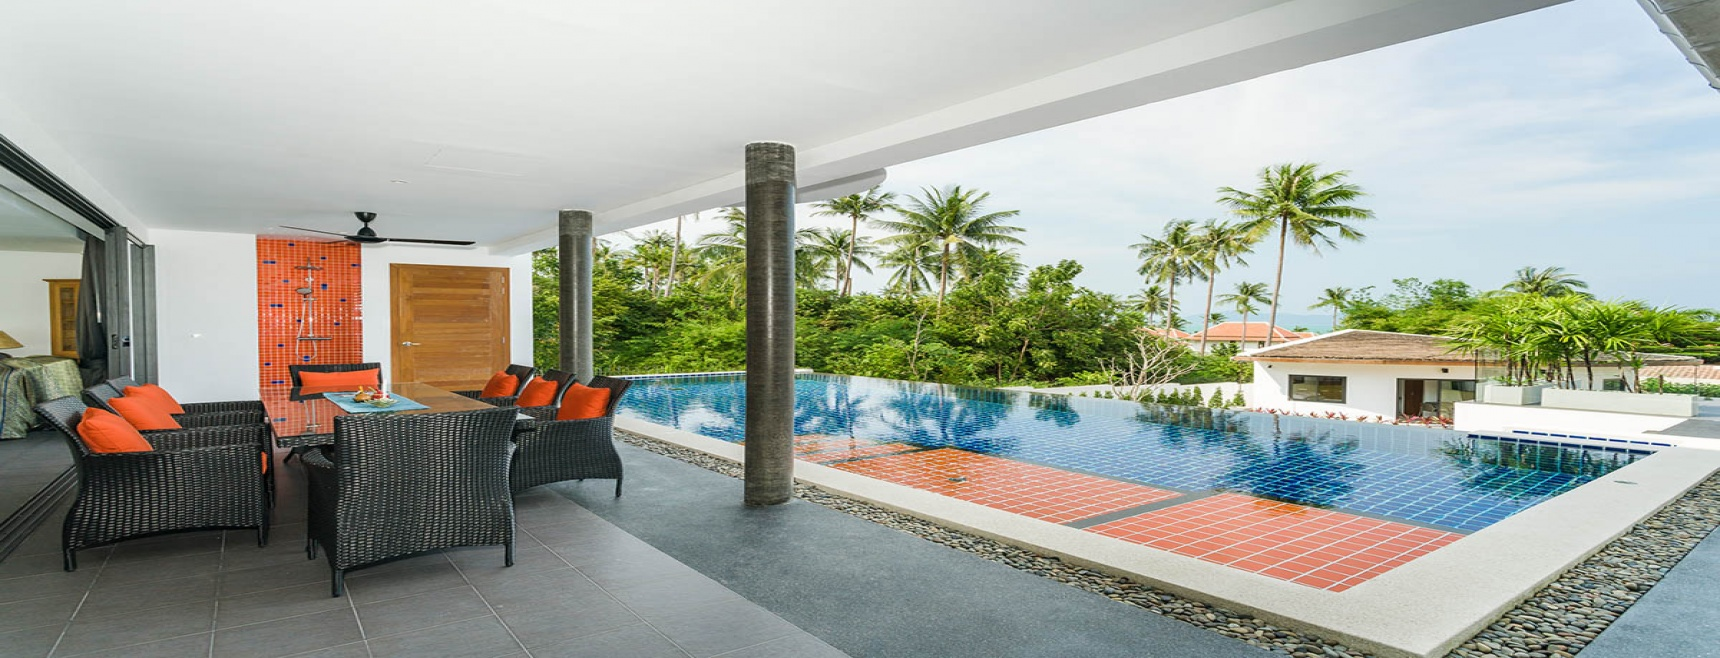 7 Bedrooms, Villa, Residential Sales, 8 Bathrooms, Listing ID 1411, Bangrak, North East, Koh Samui,